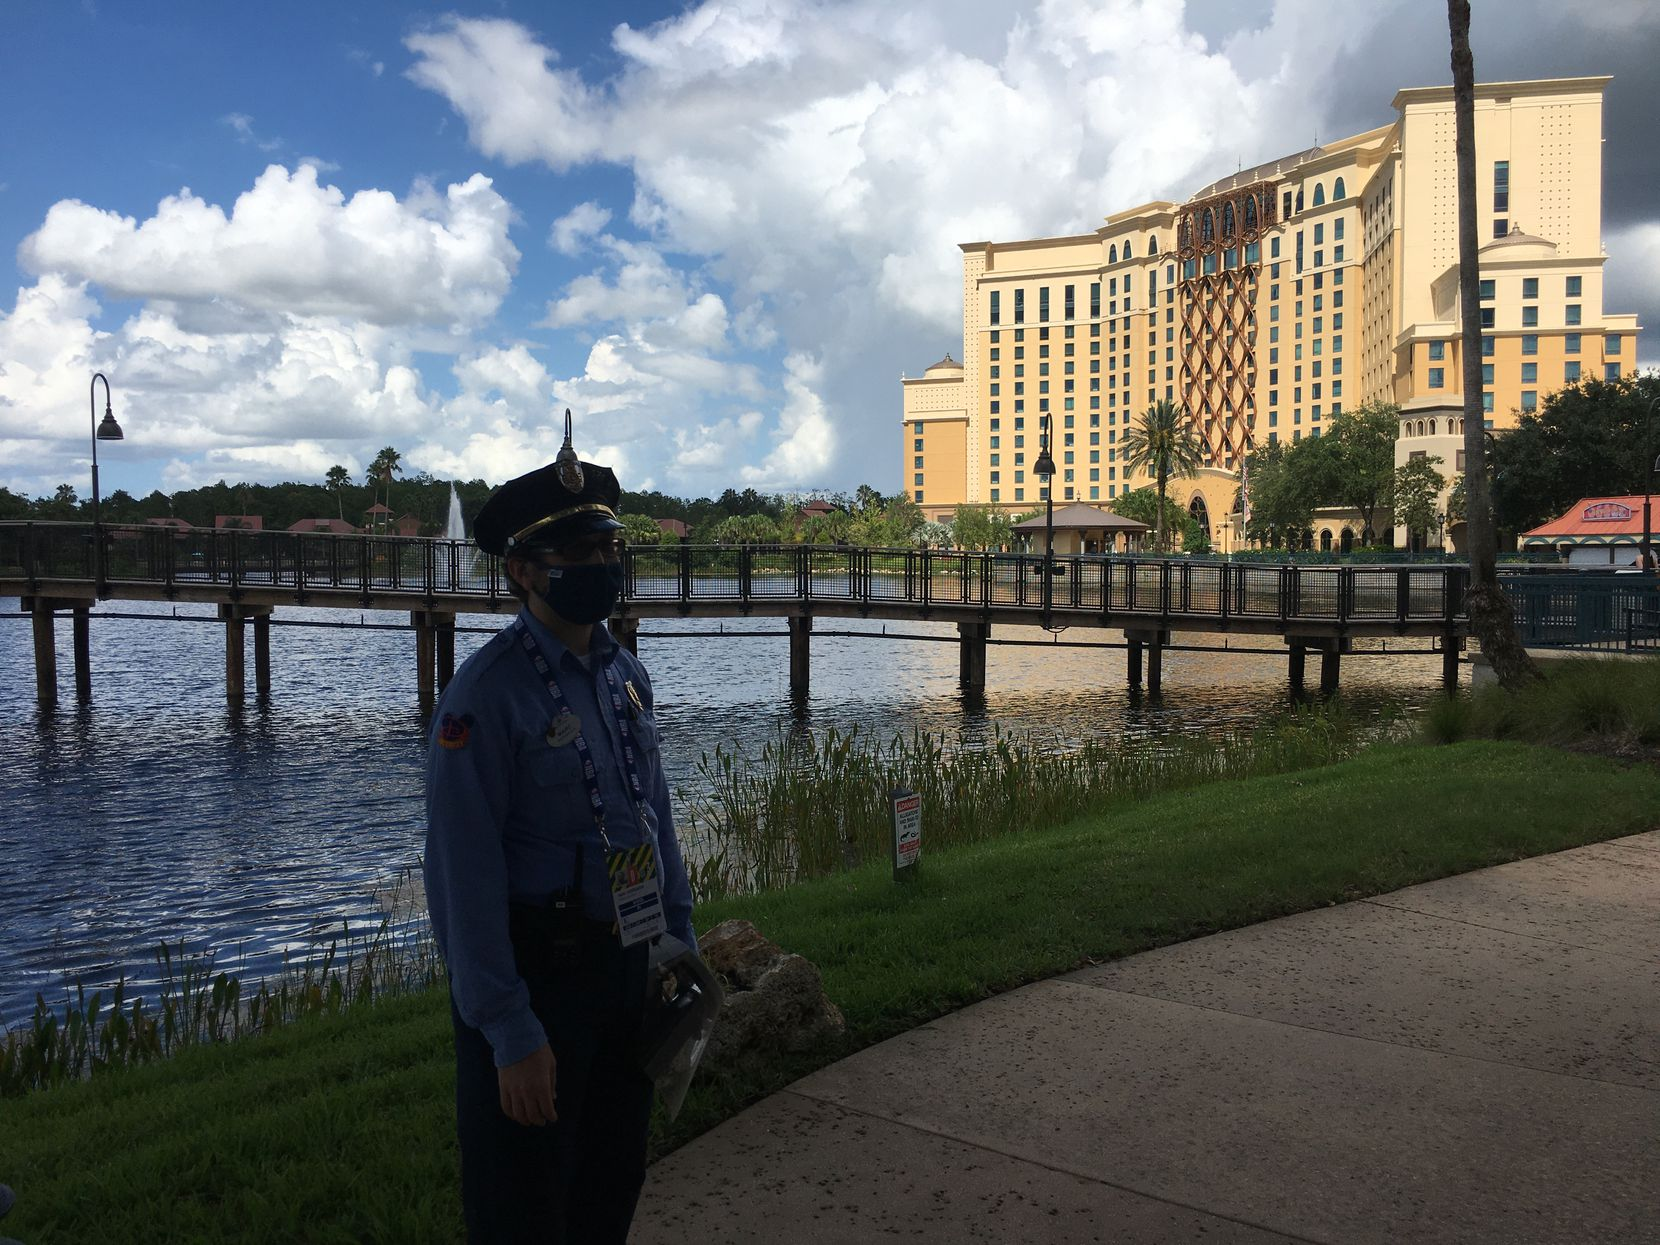 A view of the Coronado Springs Resort in the Disney World complex in Lake Buena Vista, Fla. Sunday was Brad Townsend's first day out and about after a week confined to his room and daily COVID-19 testing.